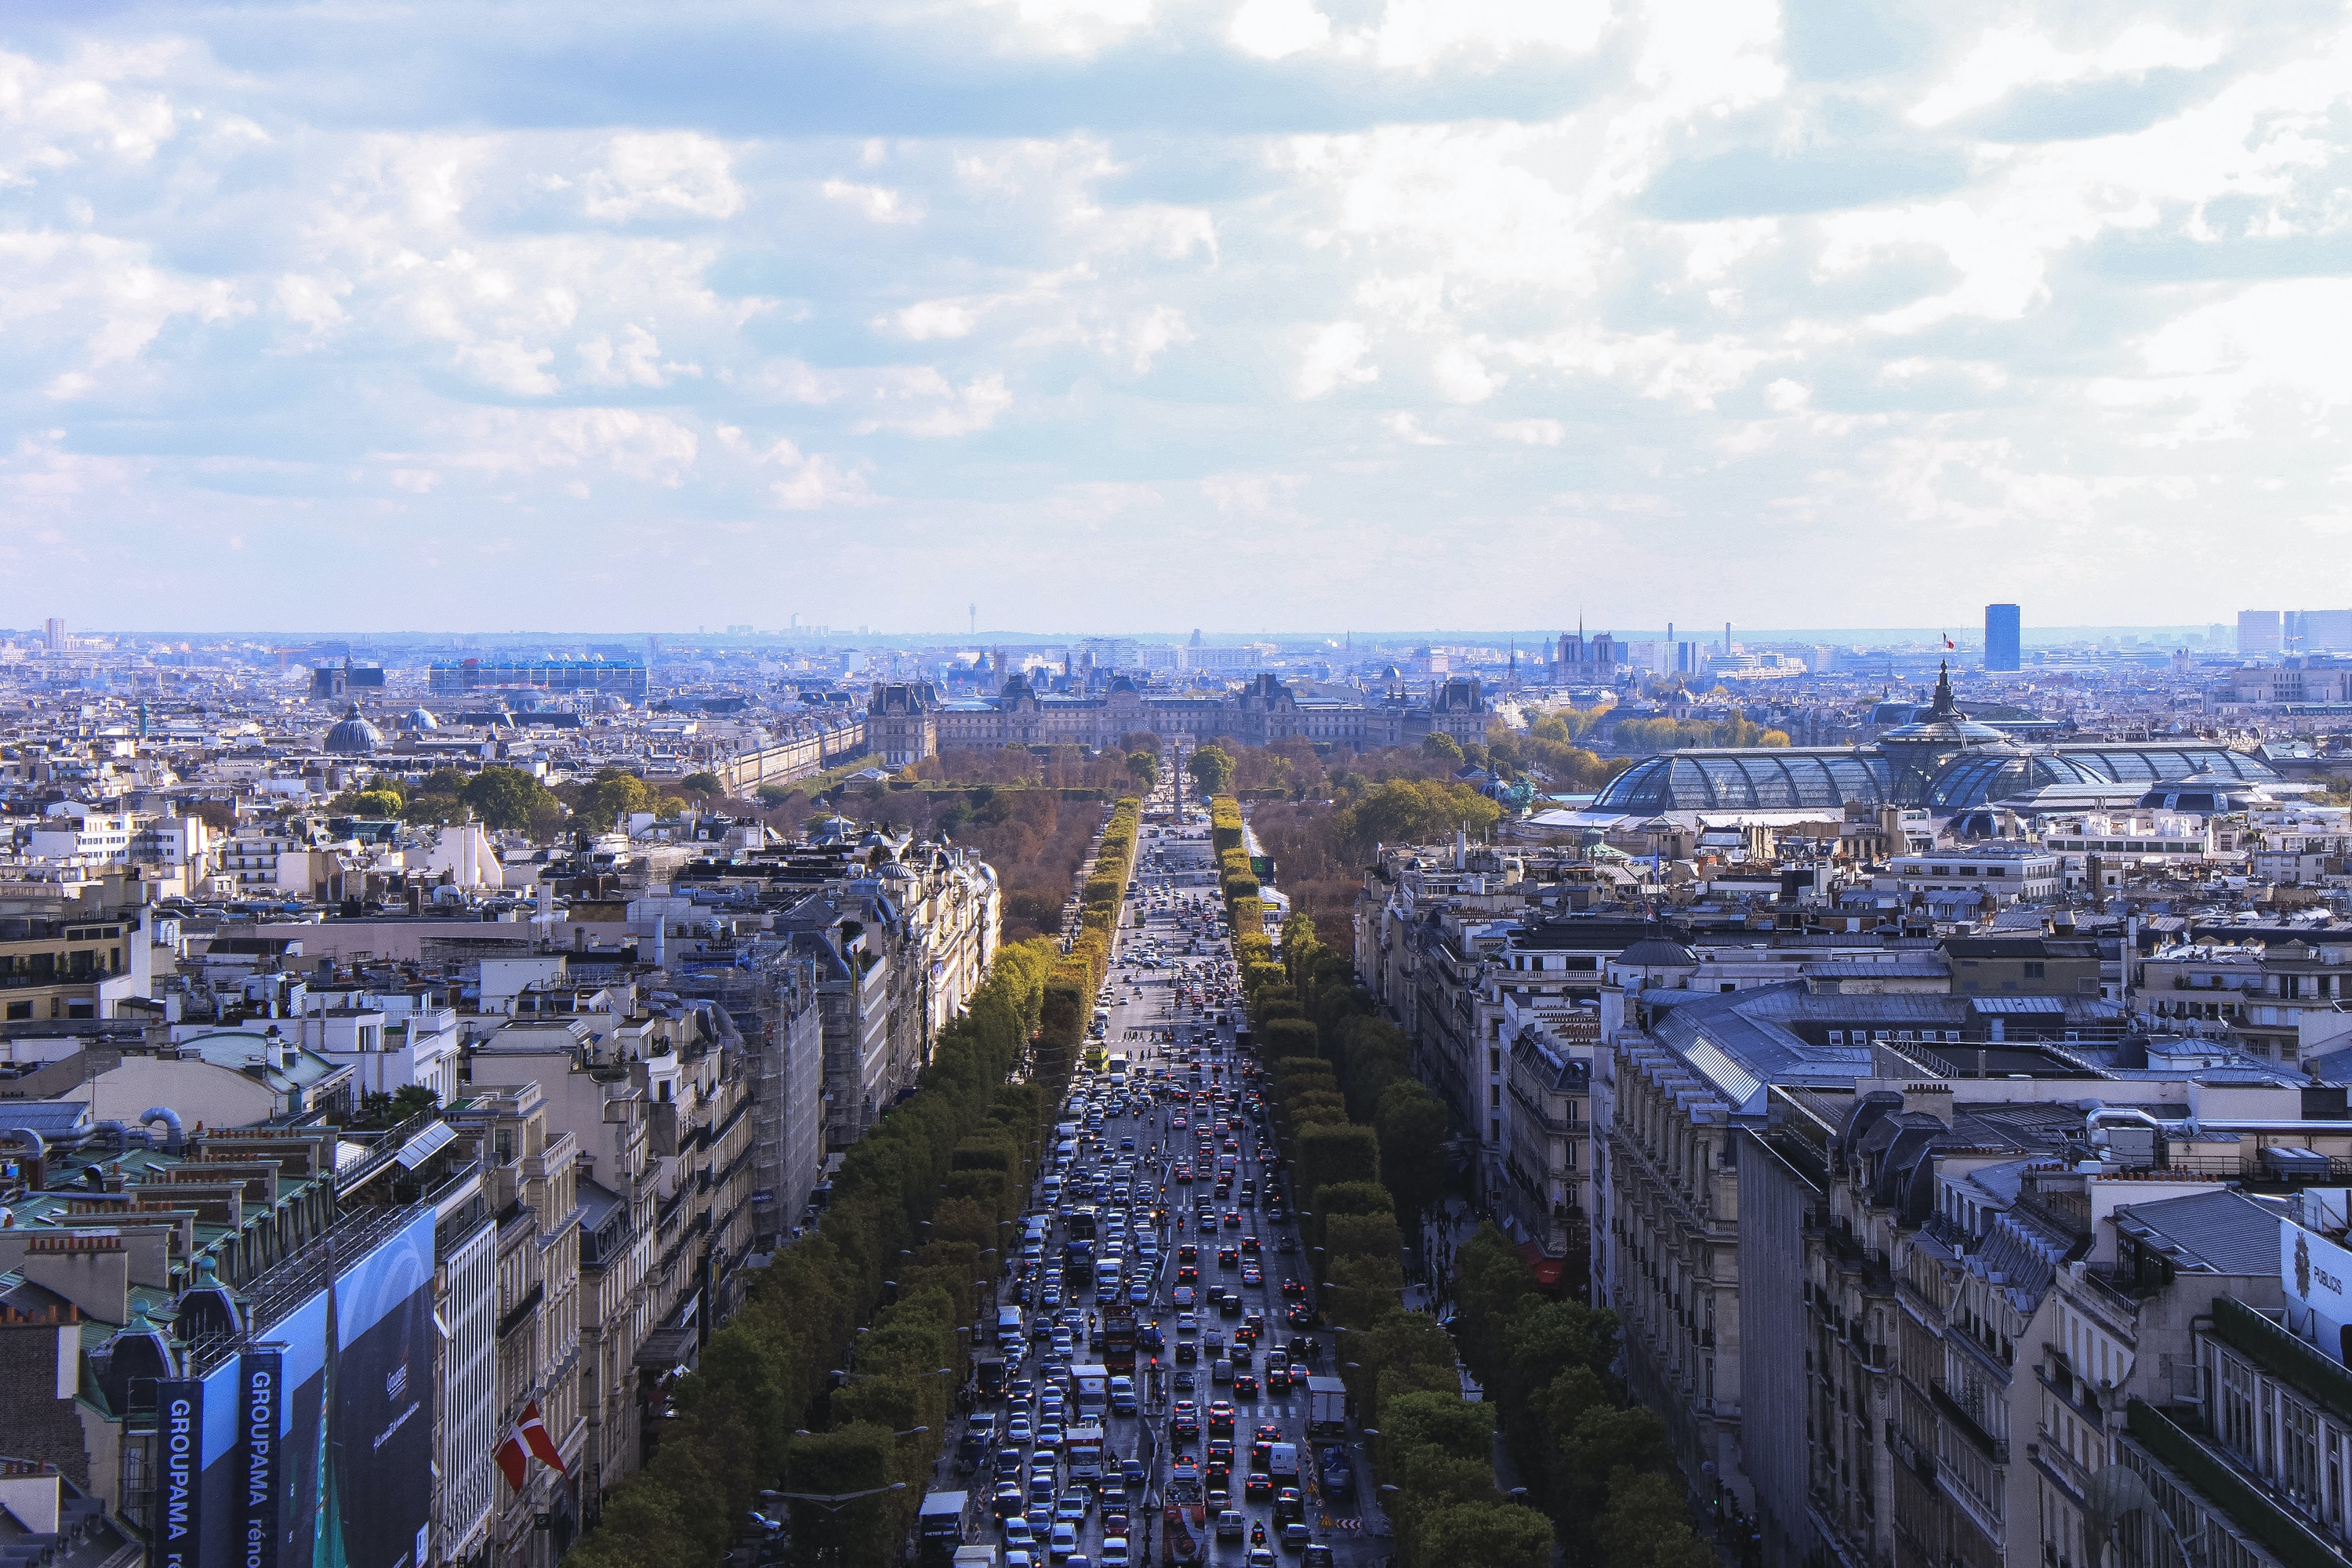 The cityscape of Paris, France with buildings and heavy street traffic.